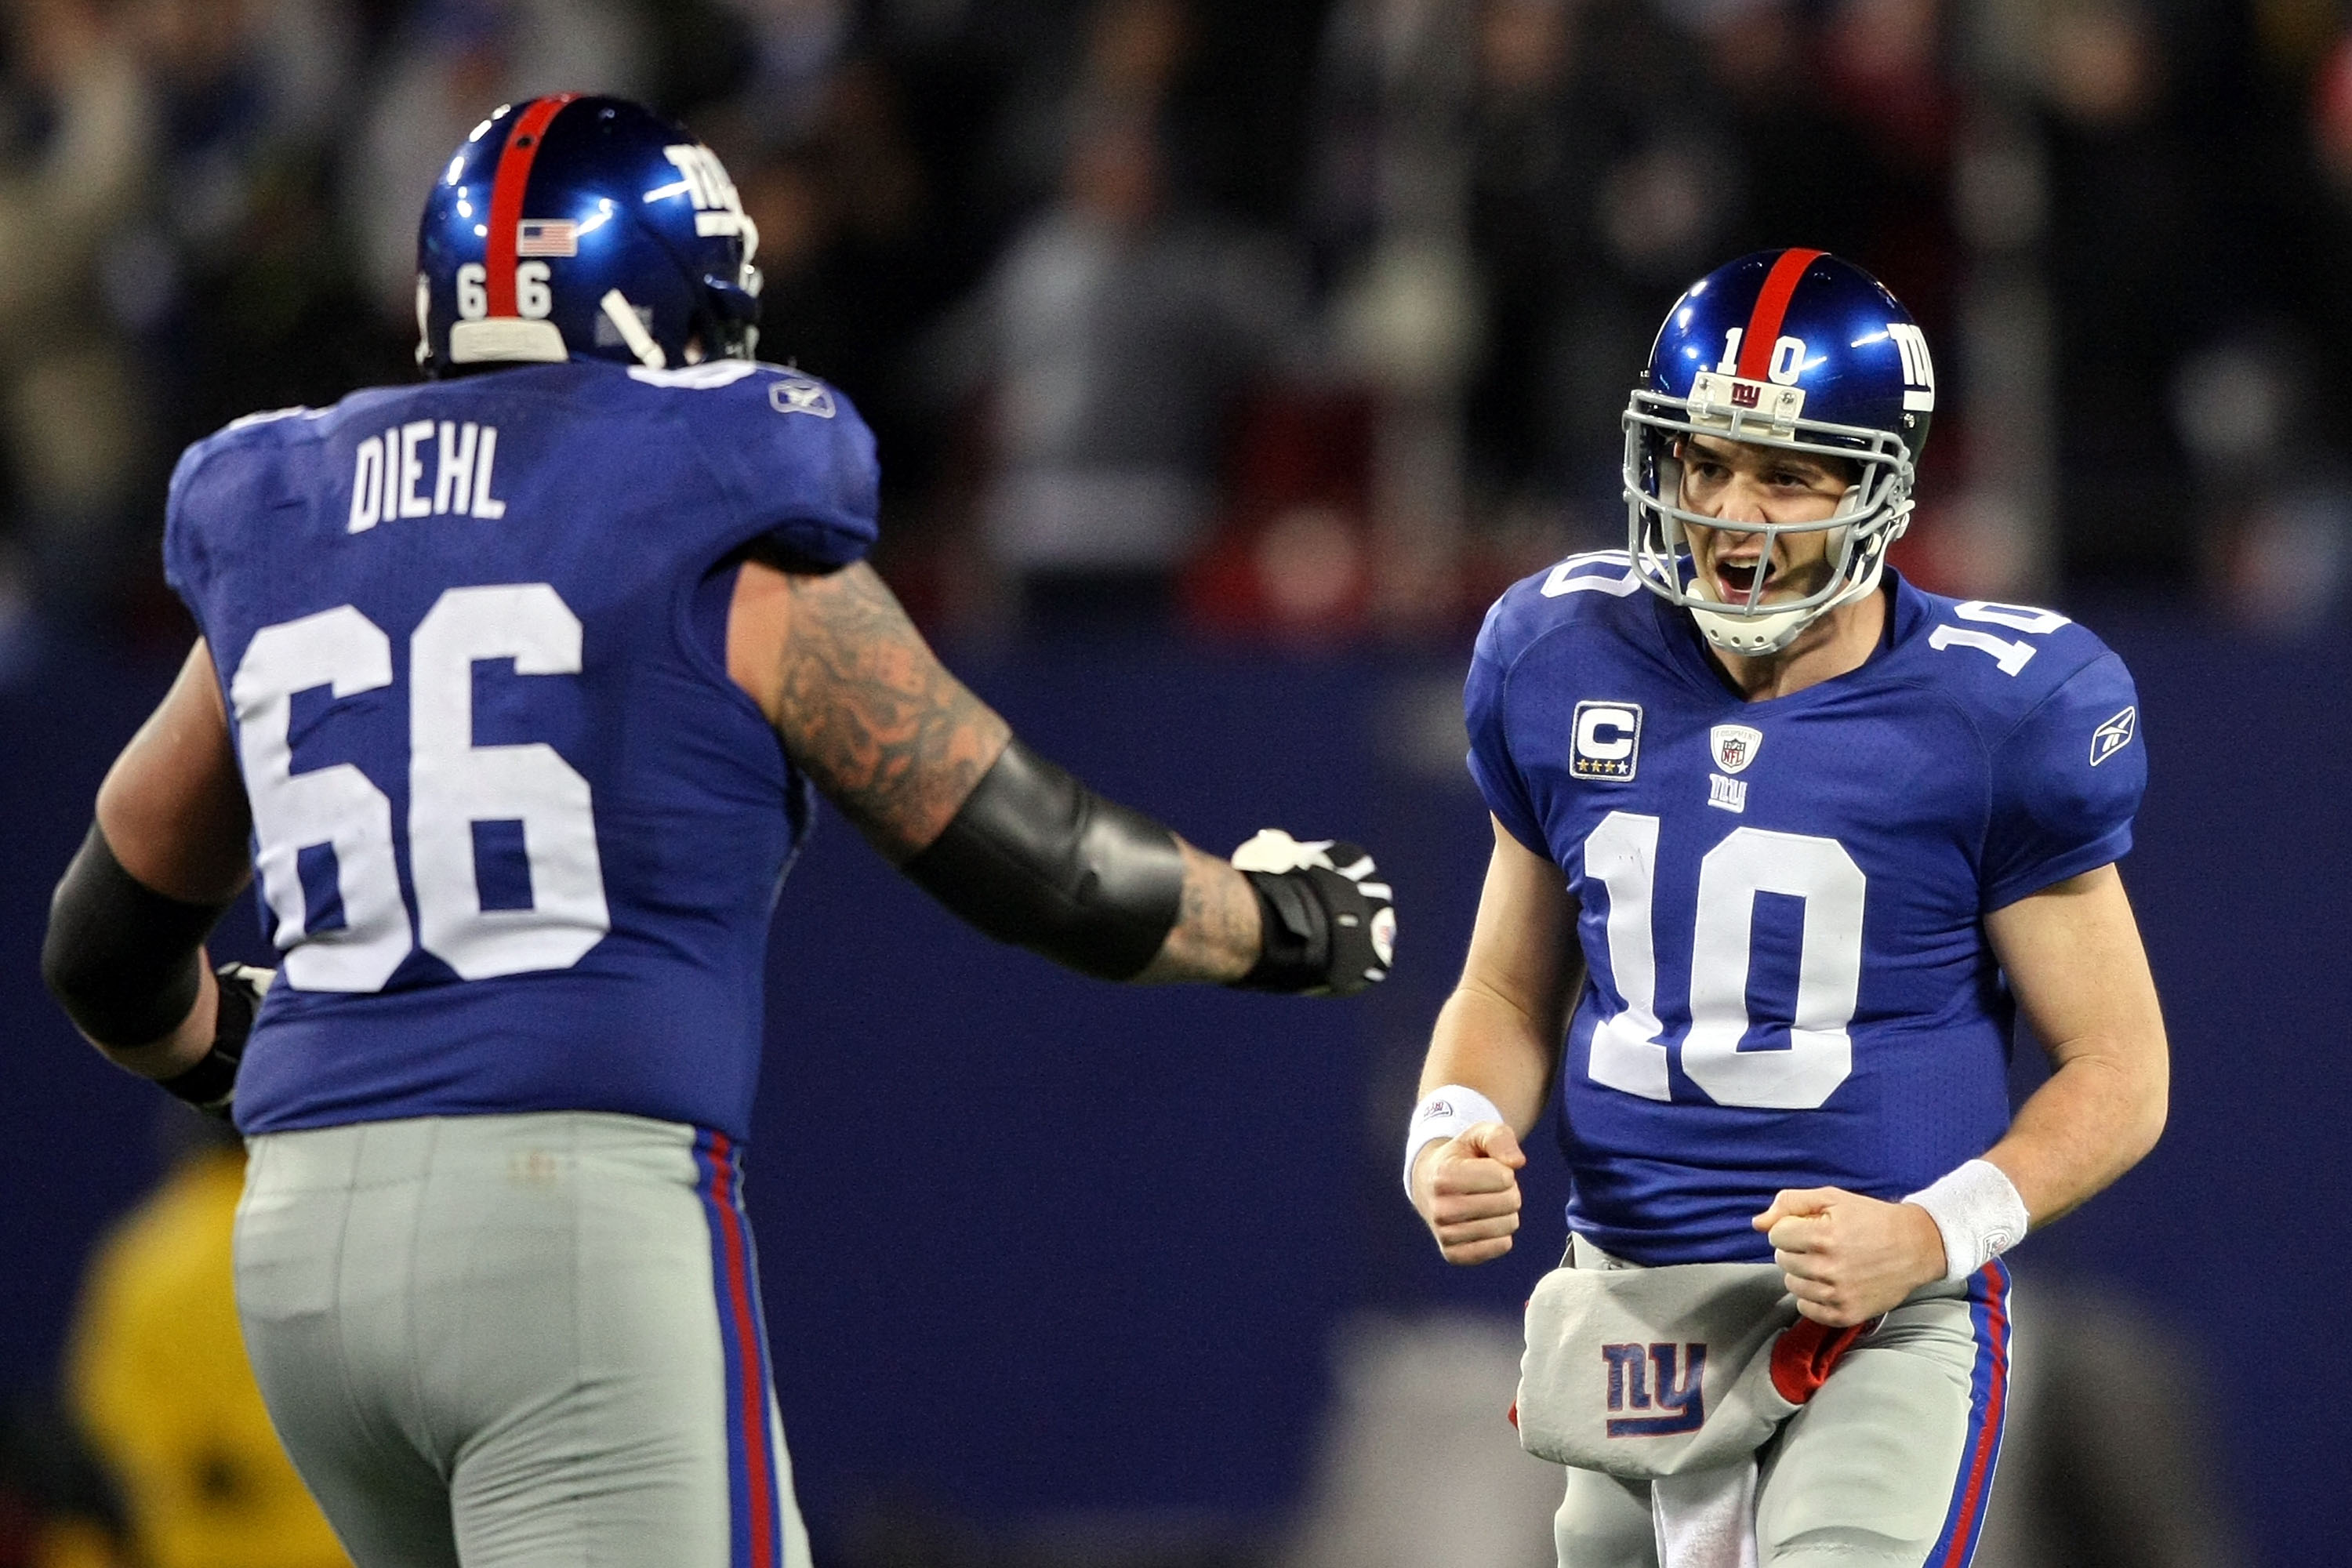 EAST RUTHERFORD, NJ - DECEMBER 13:  Eli Manning #10 of the New York Giants celebrates with David Diehl #66 after a touchdown pass in the third quarter against the Philadelphia Eagles at Giants Stadium on December 13, 2009 in East Rutherford, New Jersey.